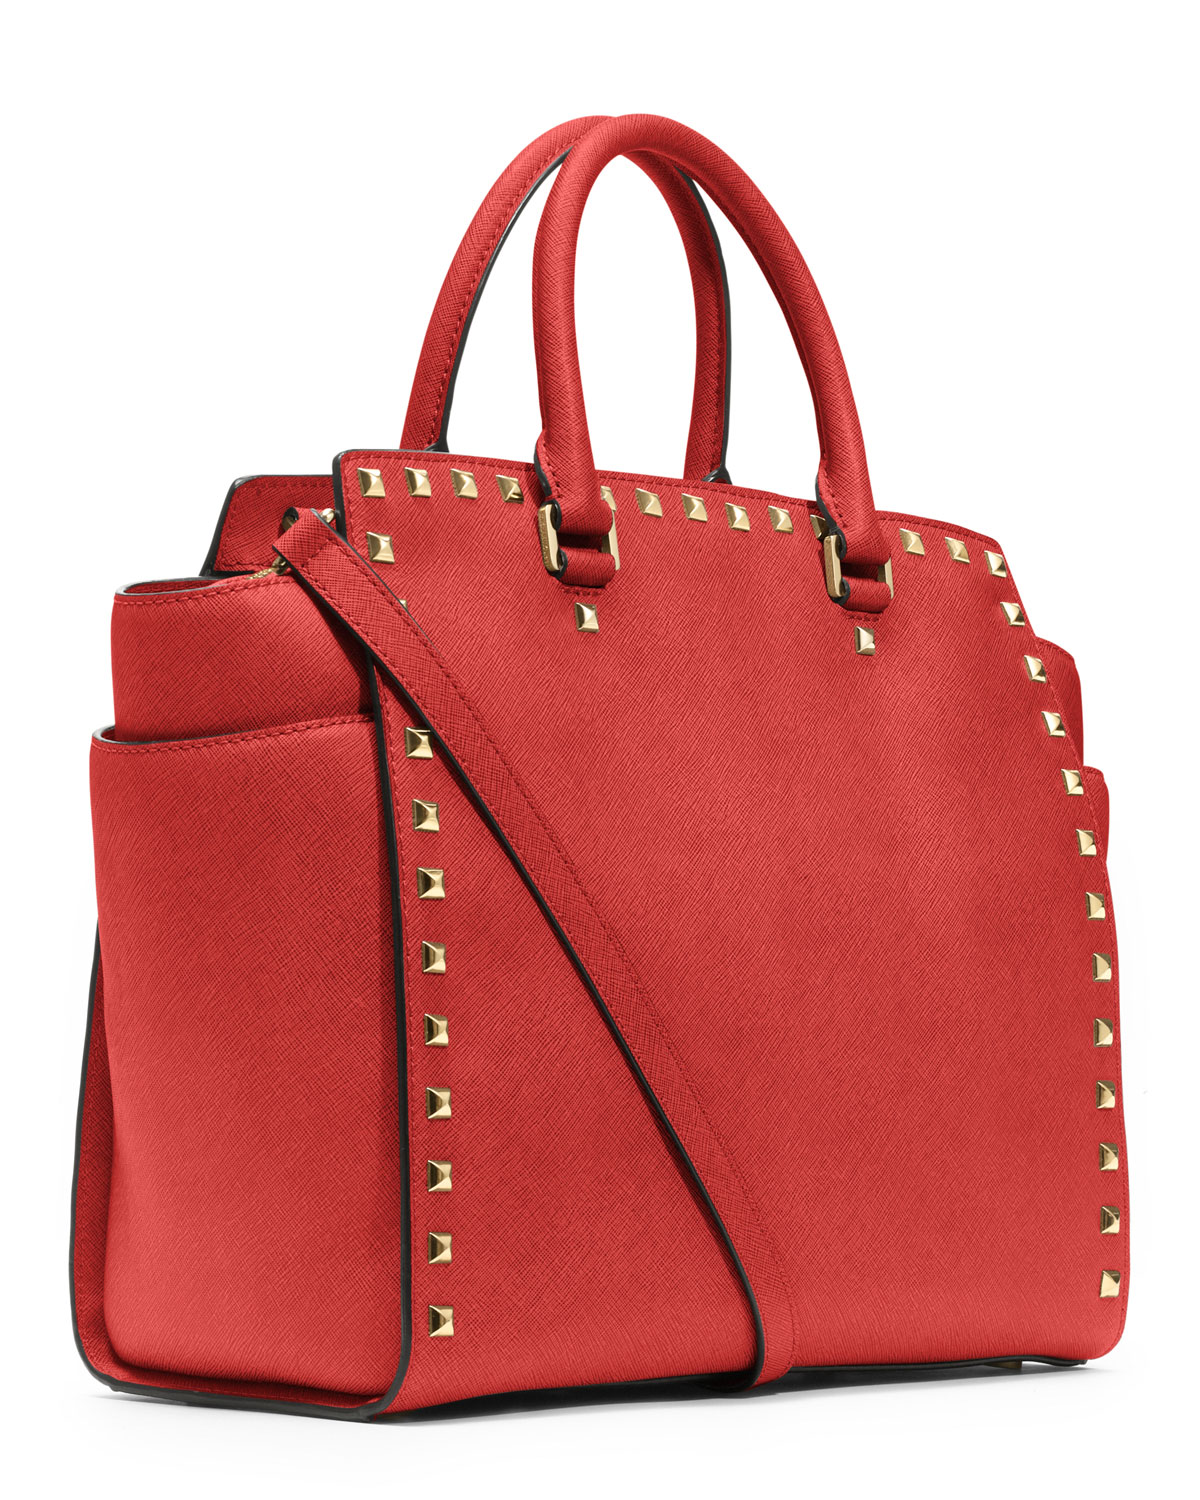 c7a974ba221f Michael Kors Large Selma Studded Saffiano Tote in Red - Lyst